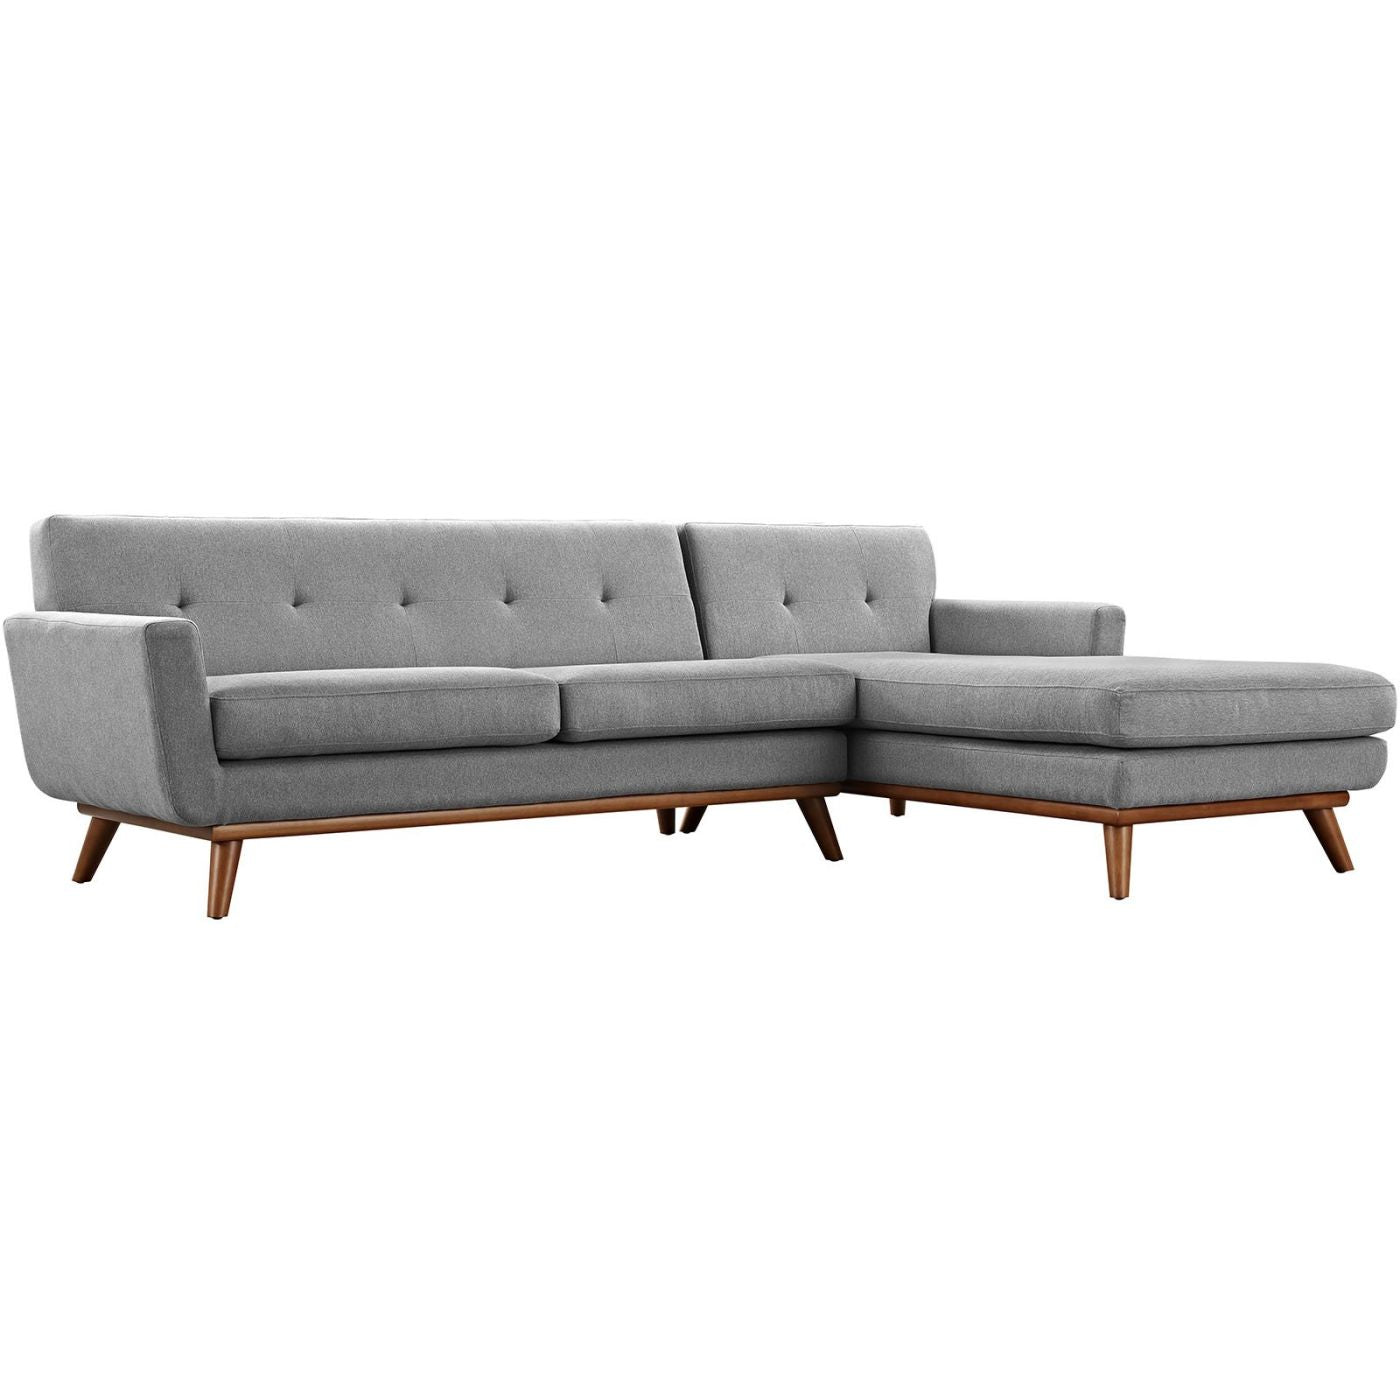 Modway Sectional Sofas on sale. EEI-2119-GRY-SET Engage Mid Century Modern  Right-Facing Sectional Sofa only Only $1,460.05 at Contemporary Furniture  ...